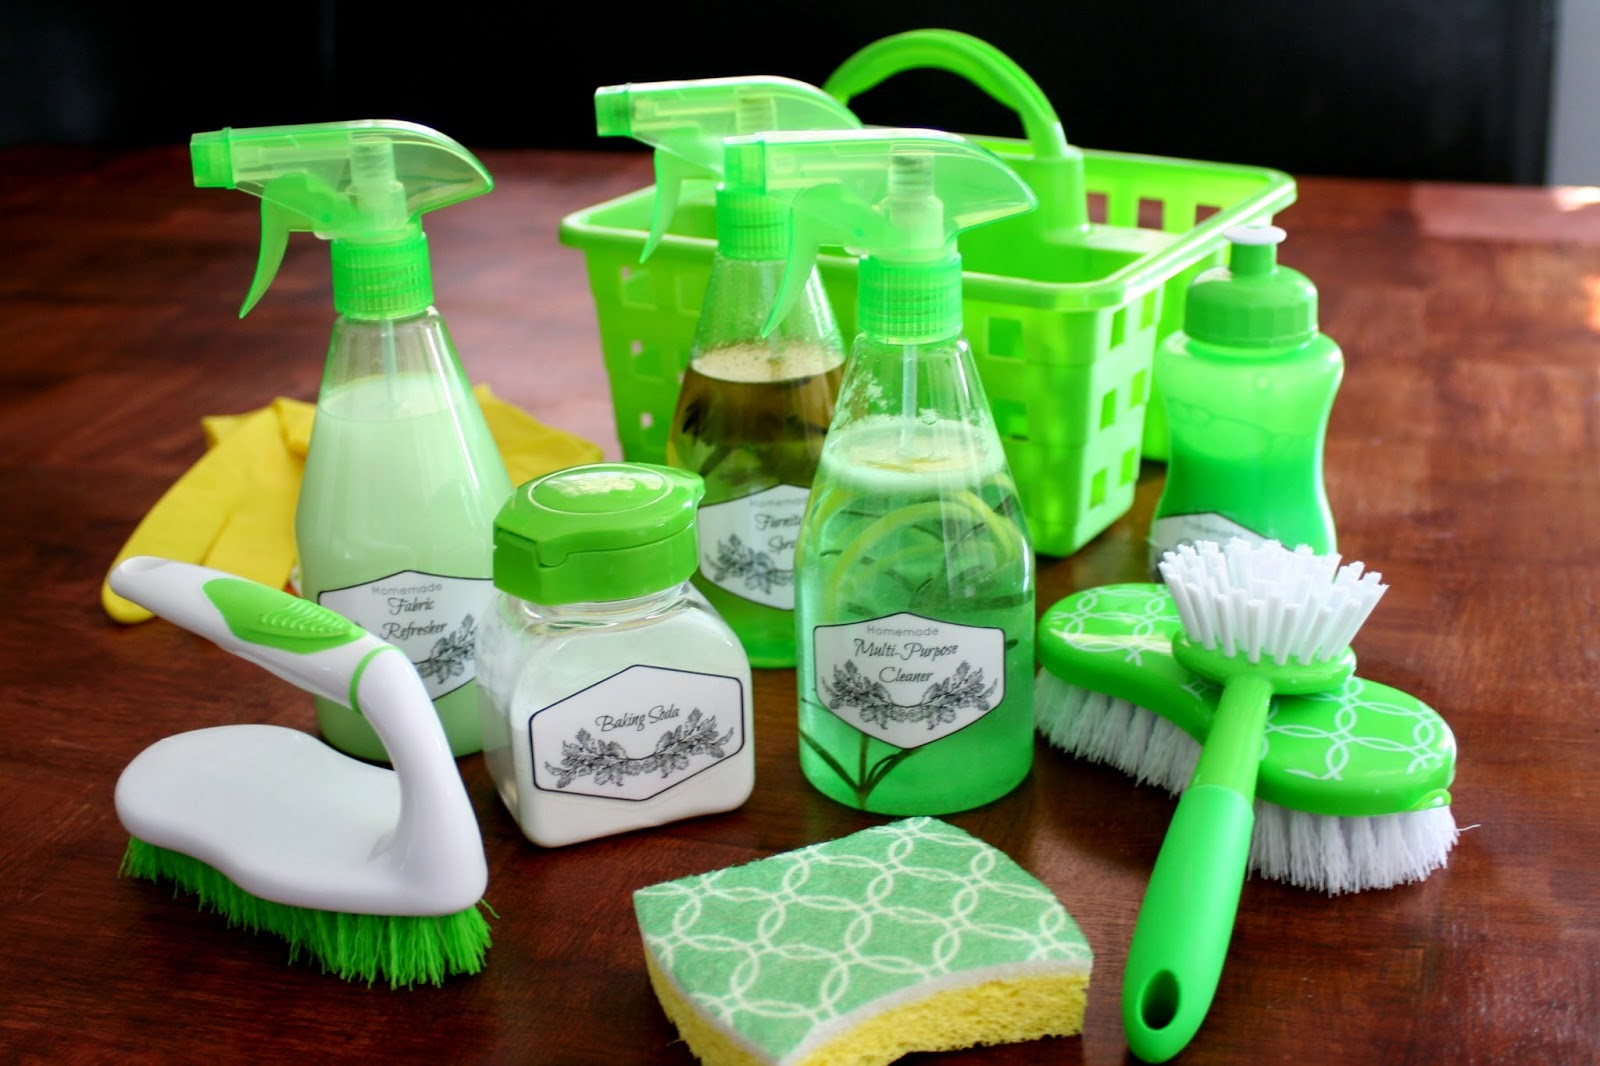 DIY Cleaning Kit with Homemade Cleaners - Jordan's Easy ...